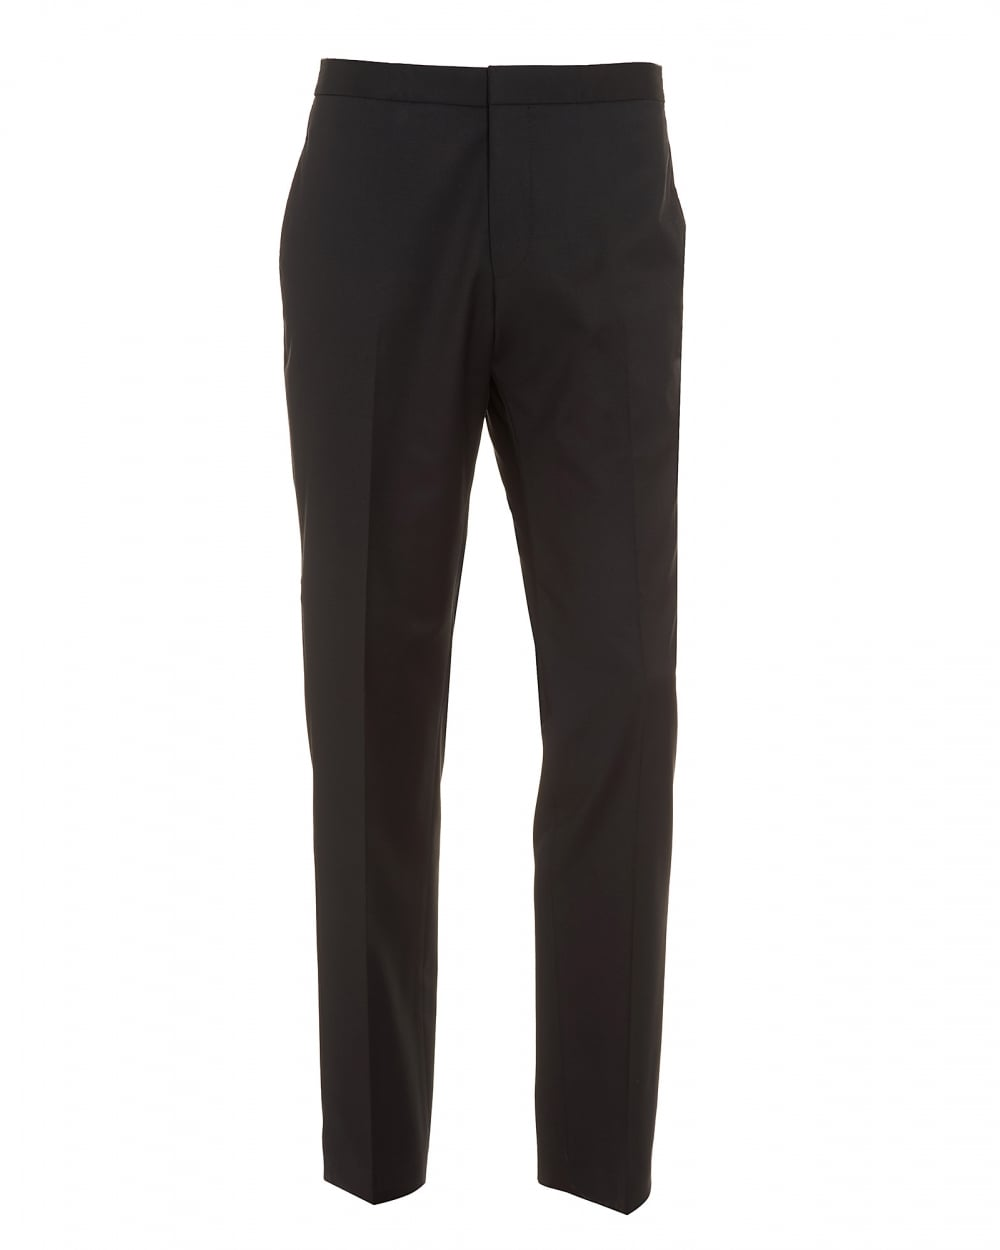 Free shipping and returns on Men's Black Pants at hamlergoodchain.ga